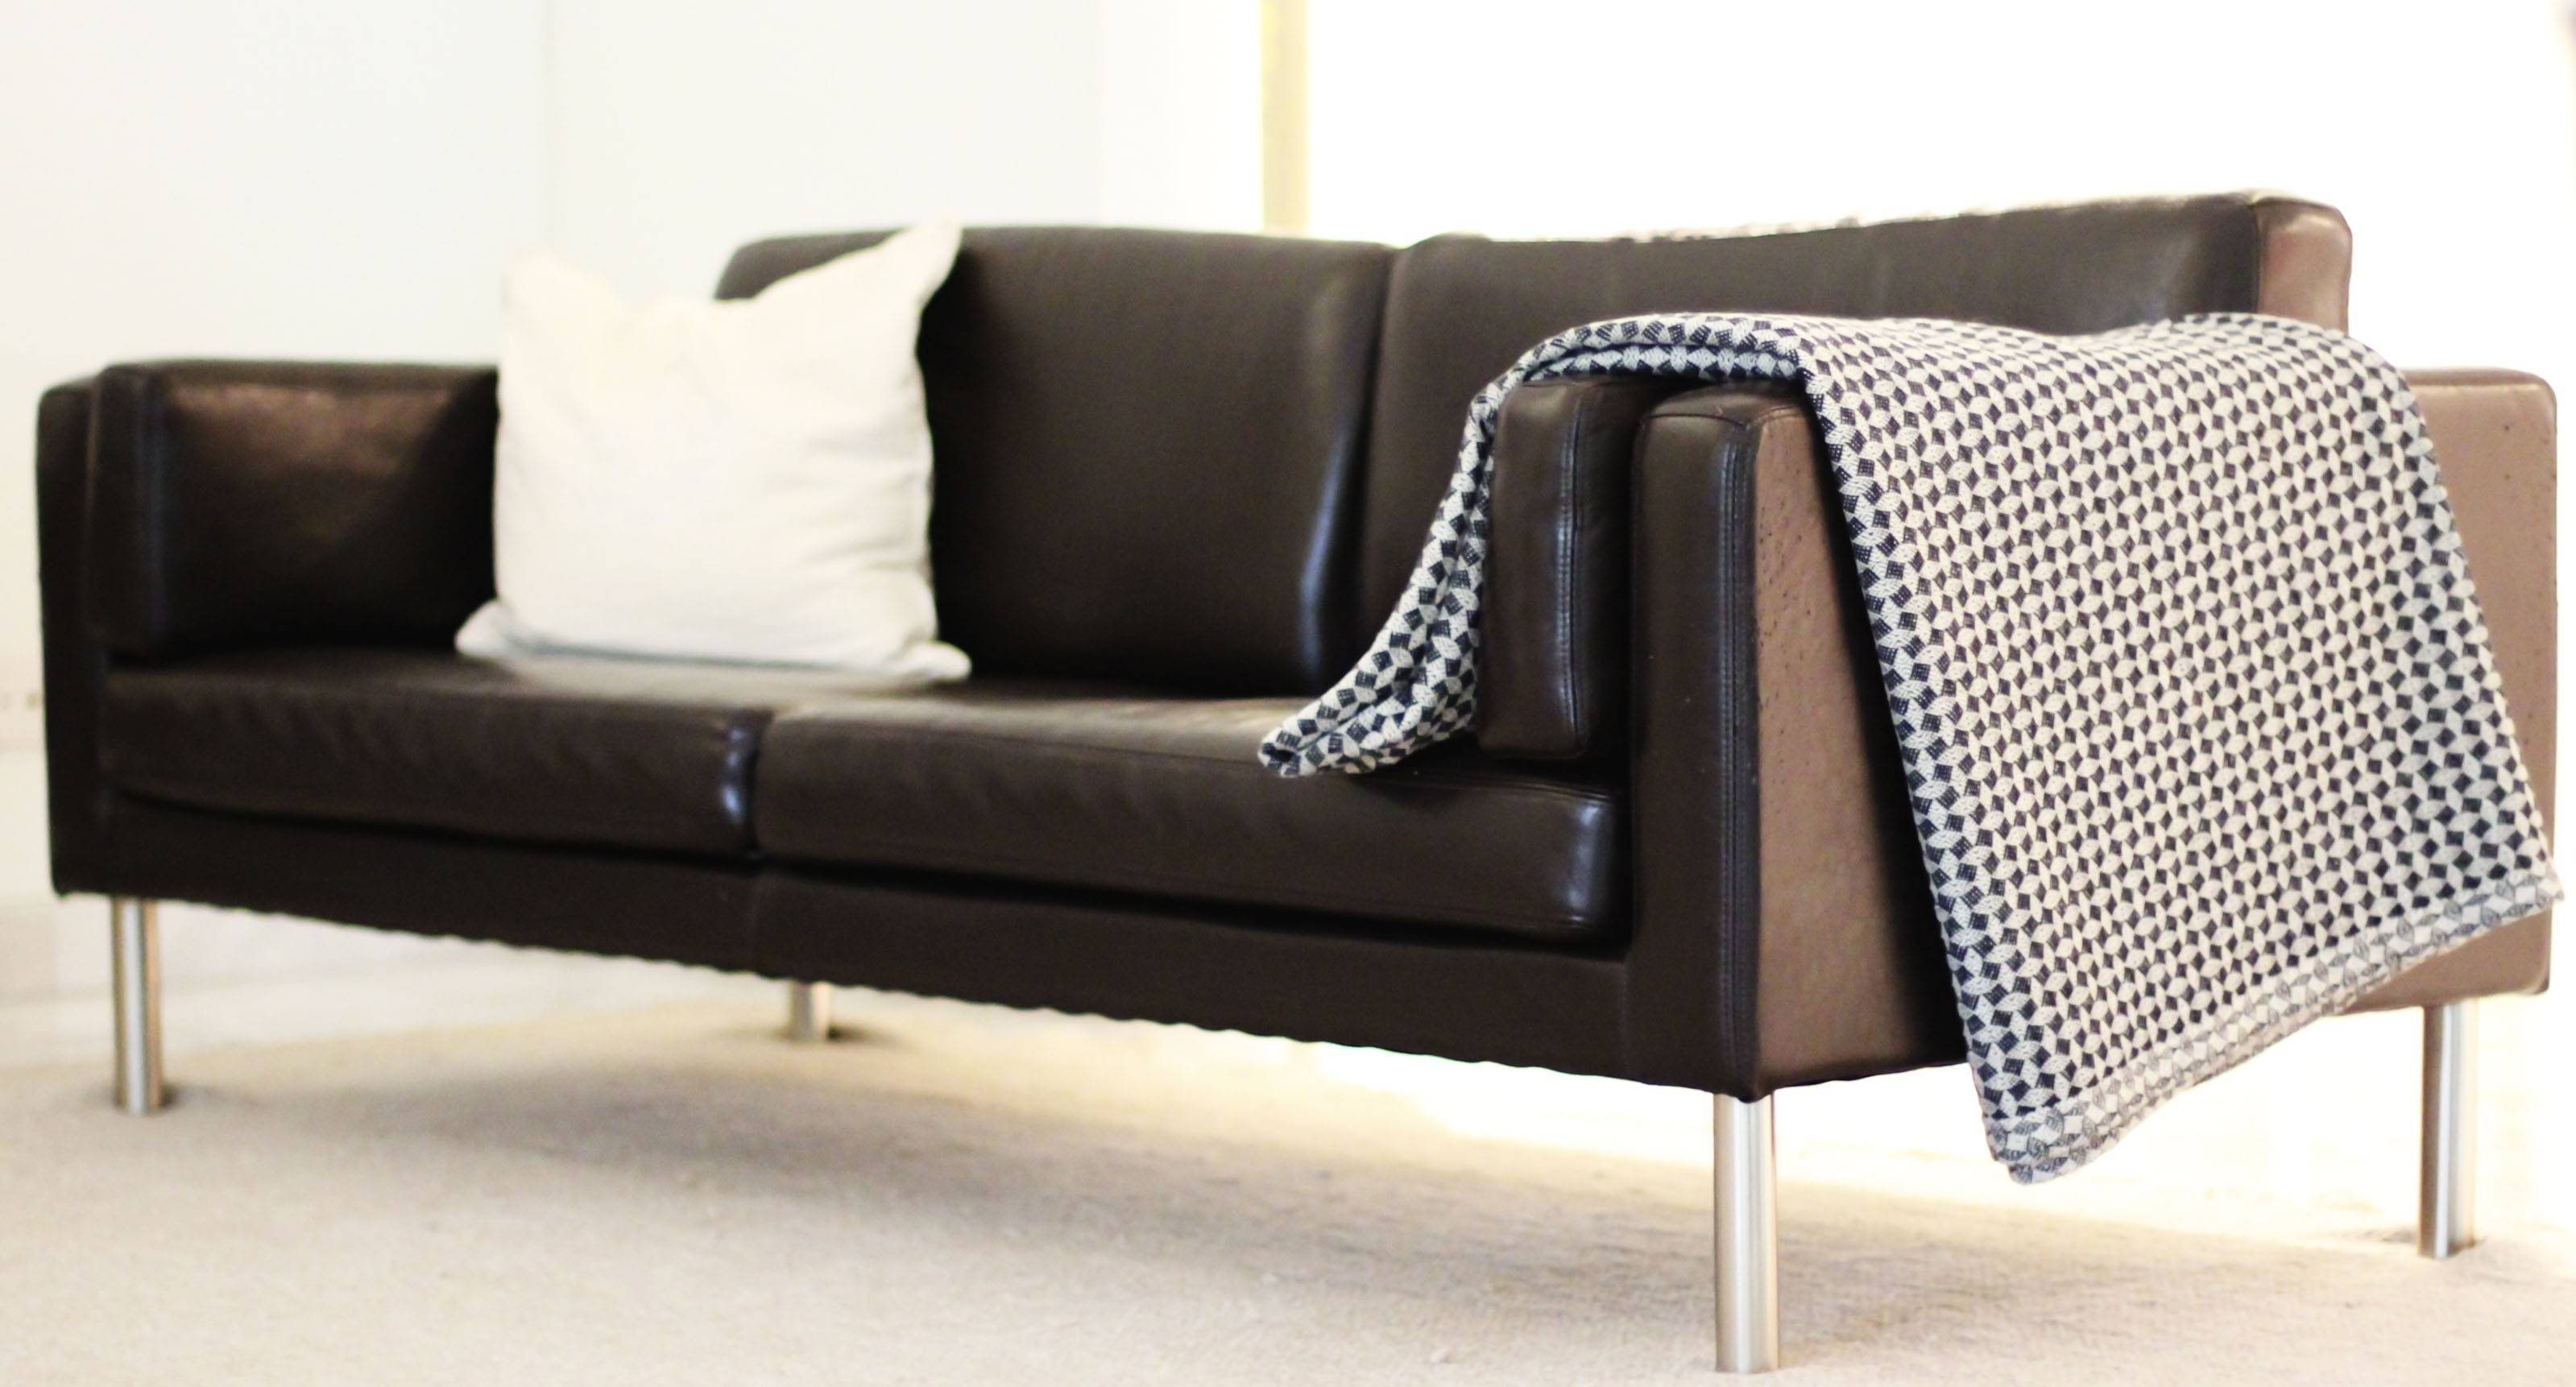 Furniture Enamour Ikea Leather Sofa Ideas Metal Chrome Legs Love for Sofas With Chrome Legs (Image 8 of 15)